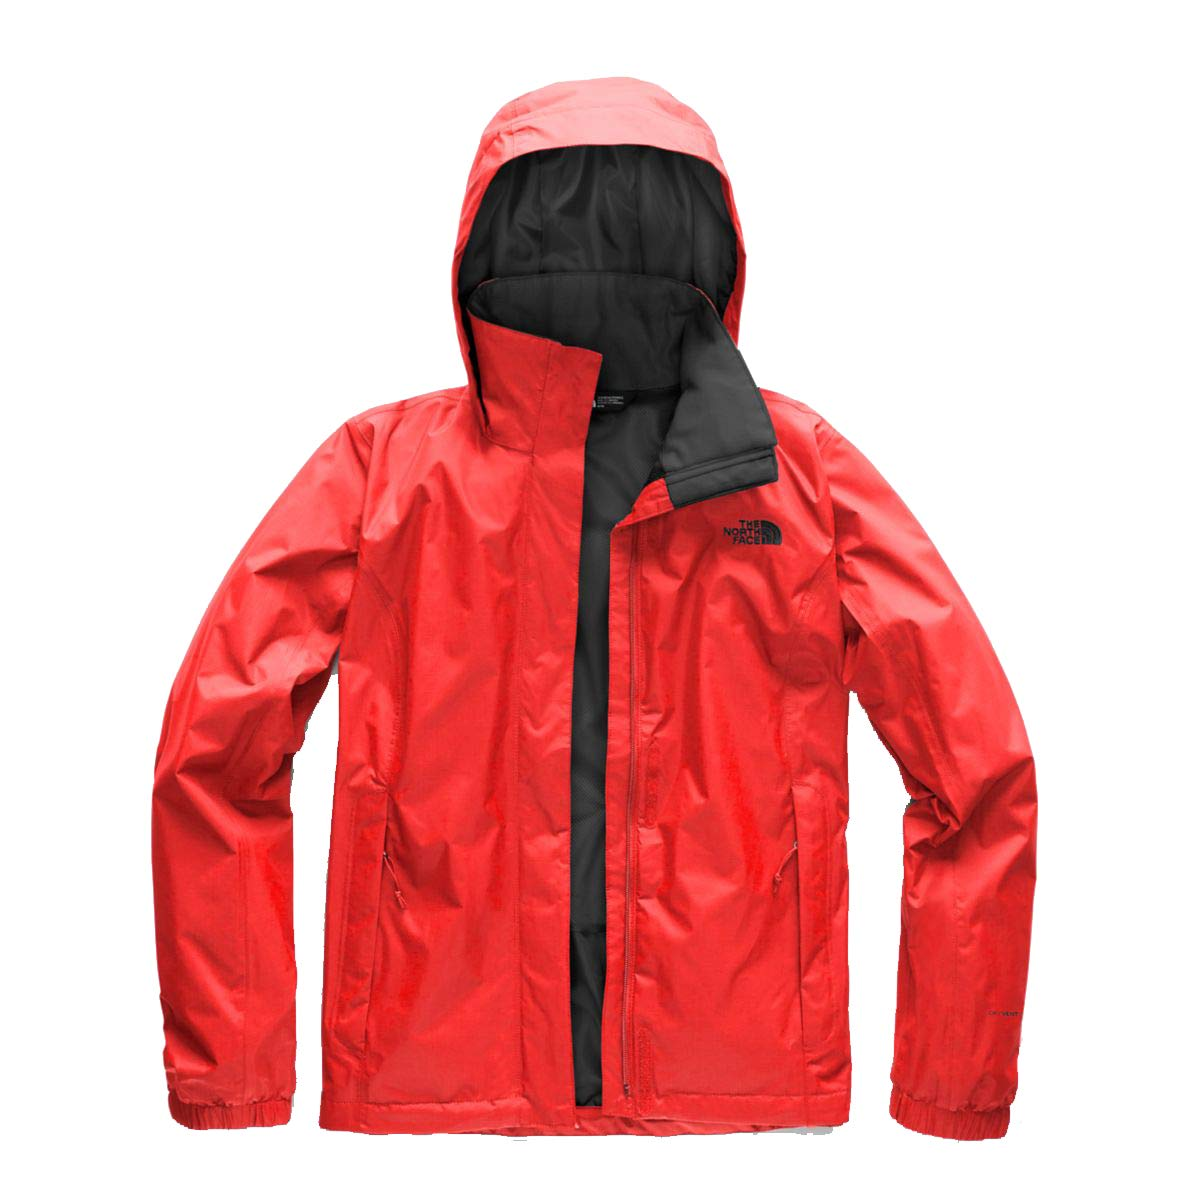 Juicy Red & Asphalt Grey The North Face Women's Resolve Jacket